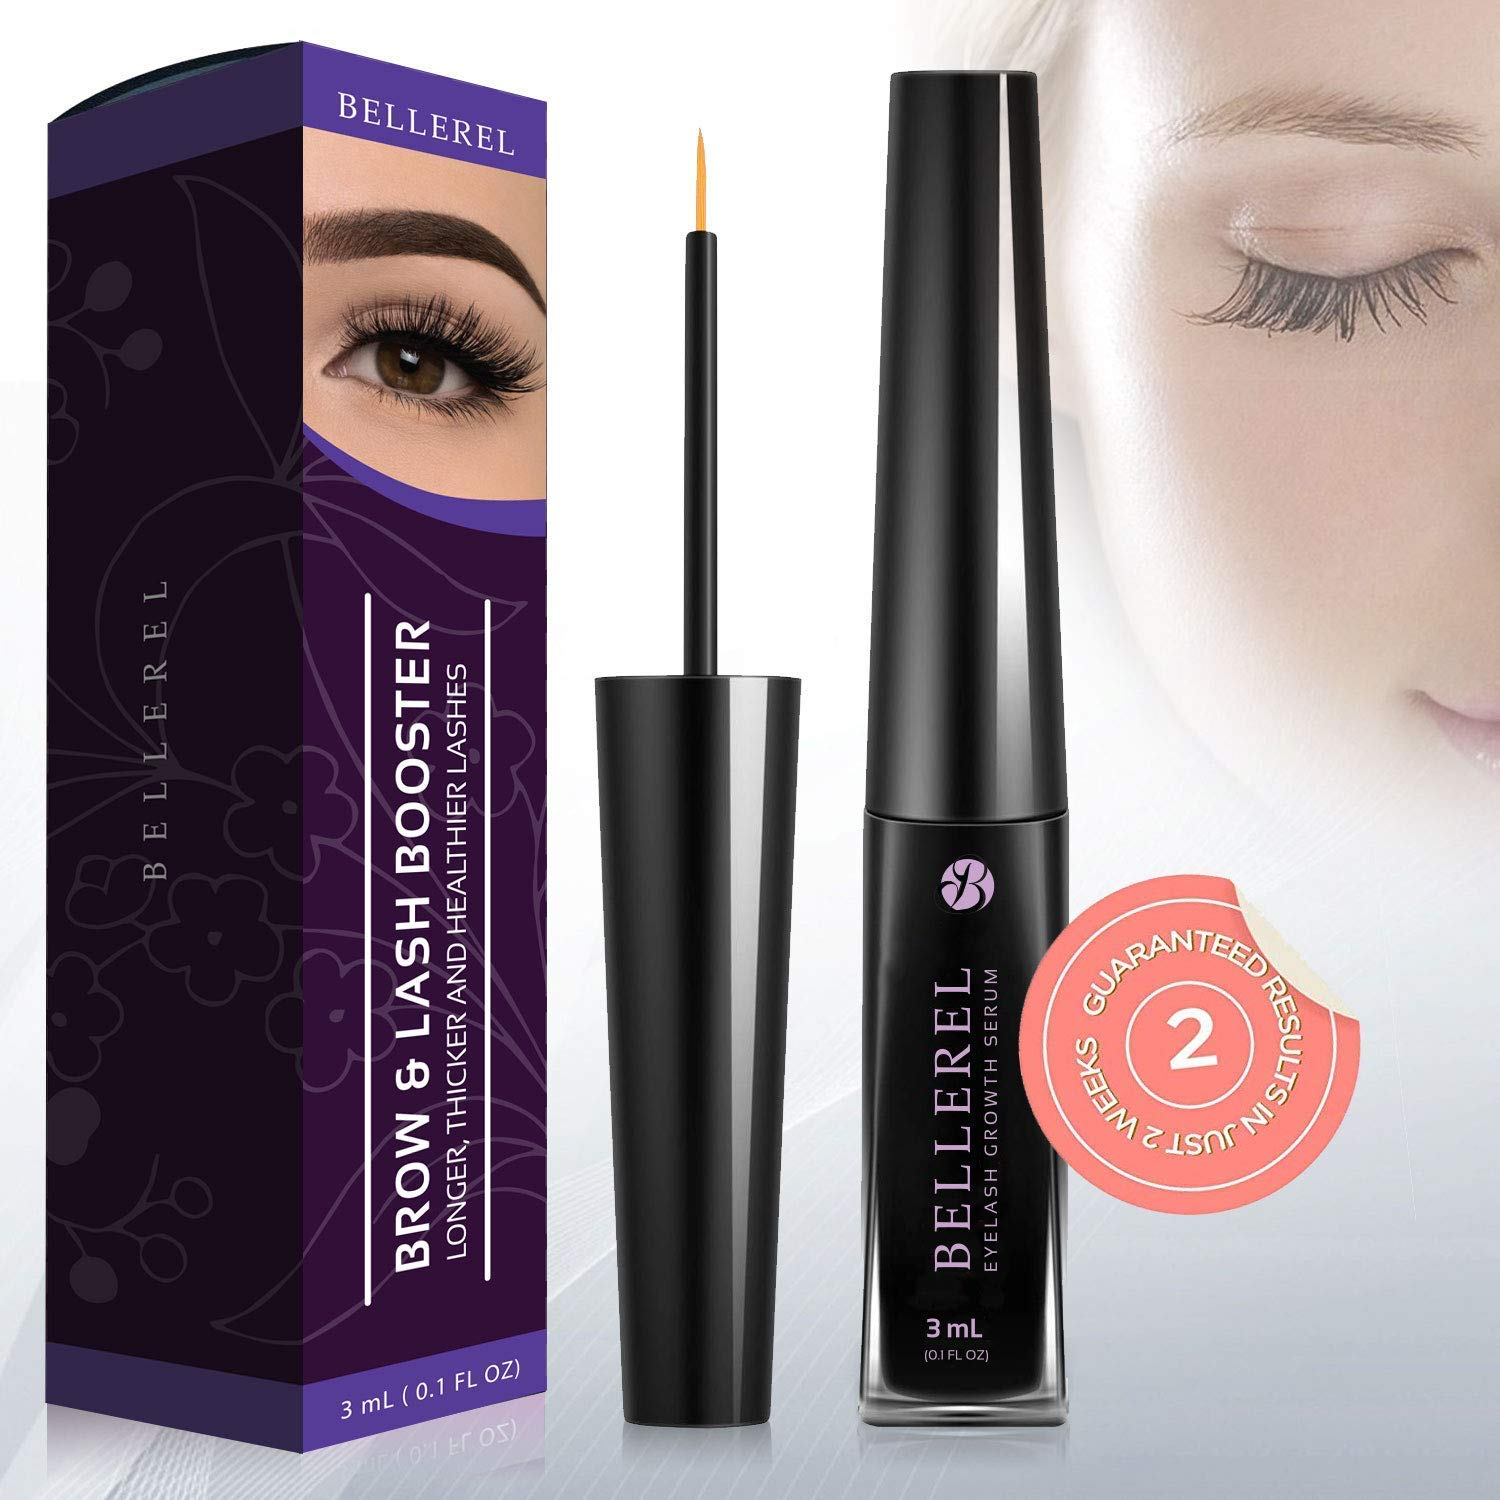 b42962e3e3f Eyelash Growth Serum Lash and Brow Booster Serum for Long, Luscious Lashes  and Eyebrows (3ML): Amazon.ca: Beauty